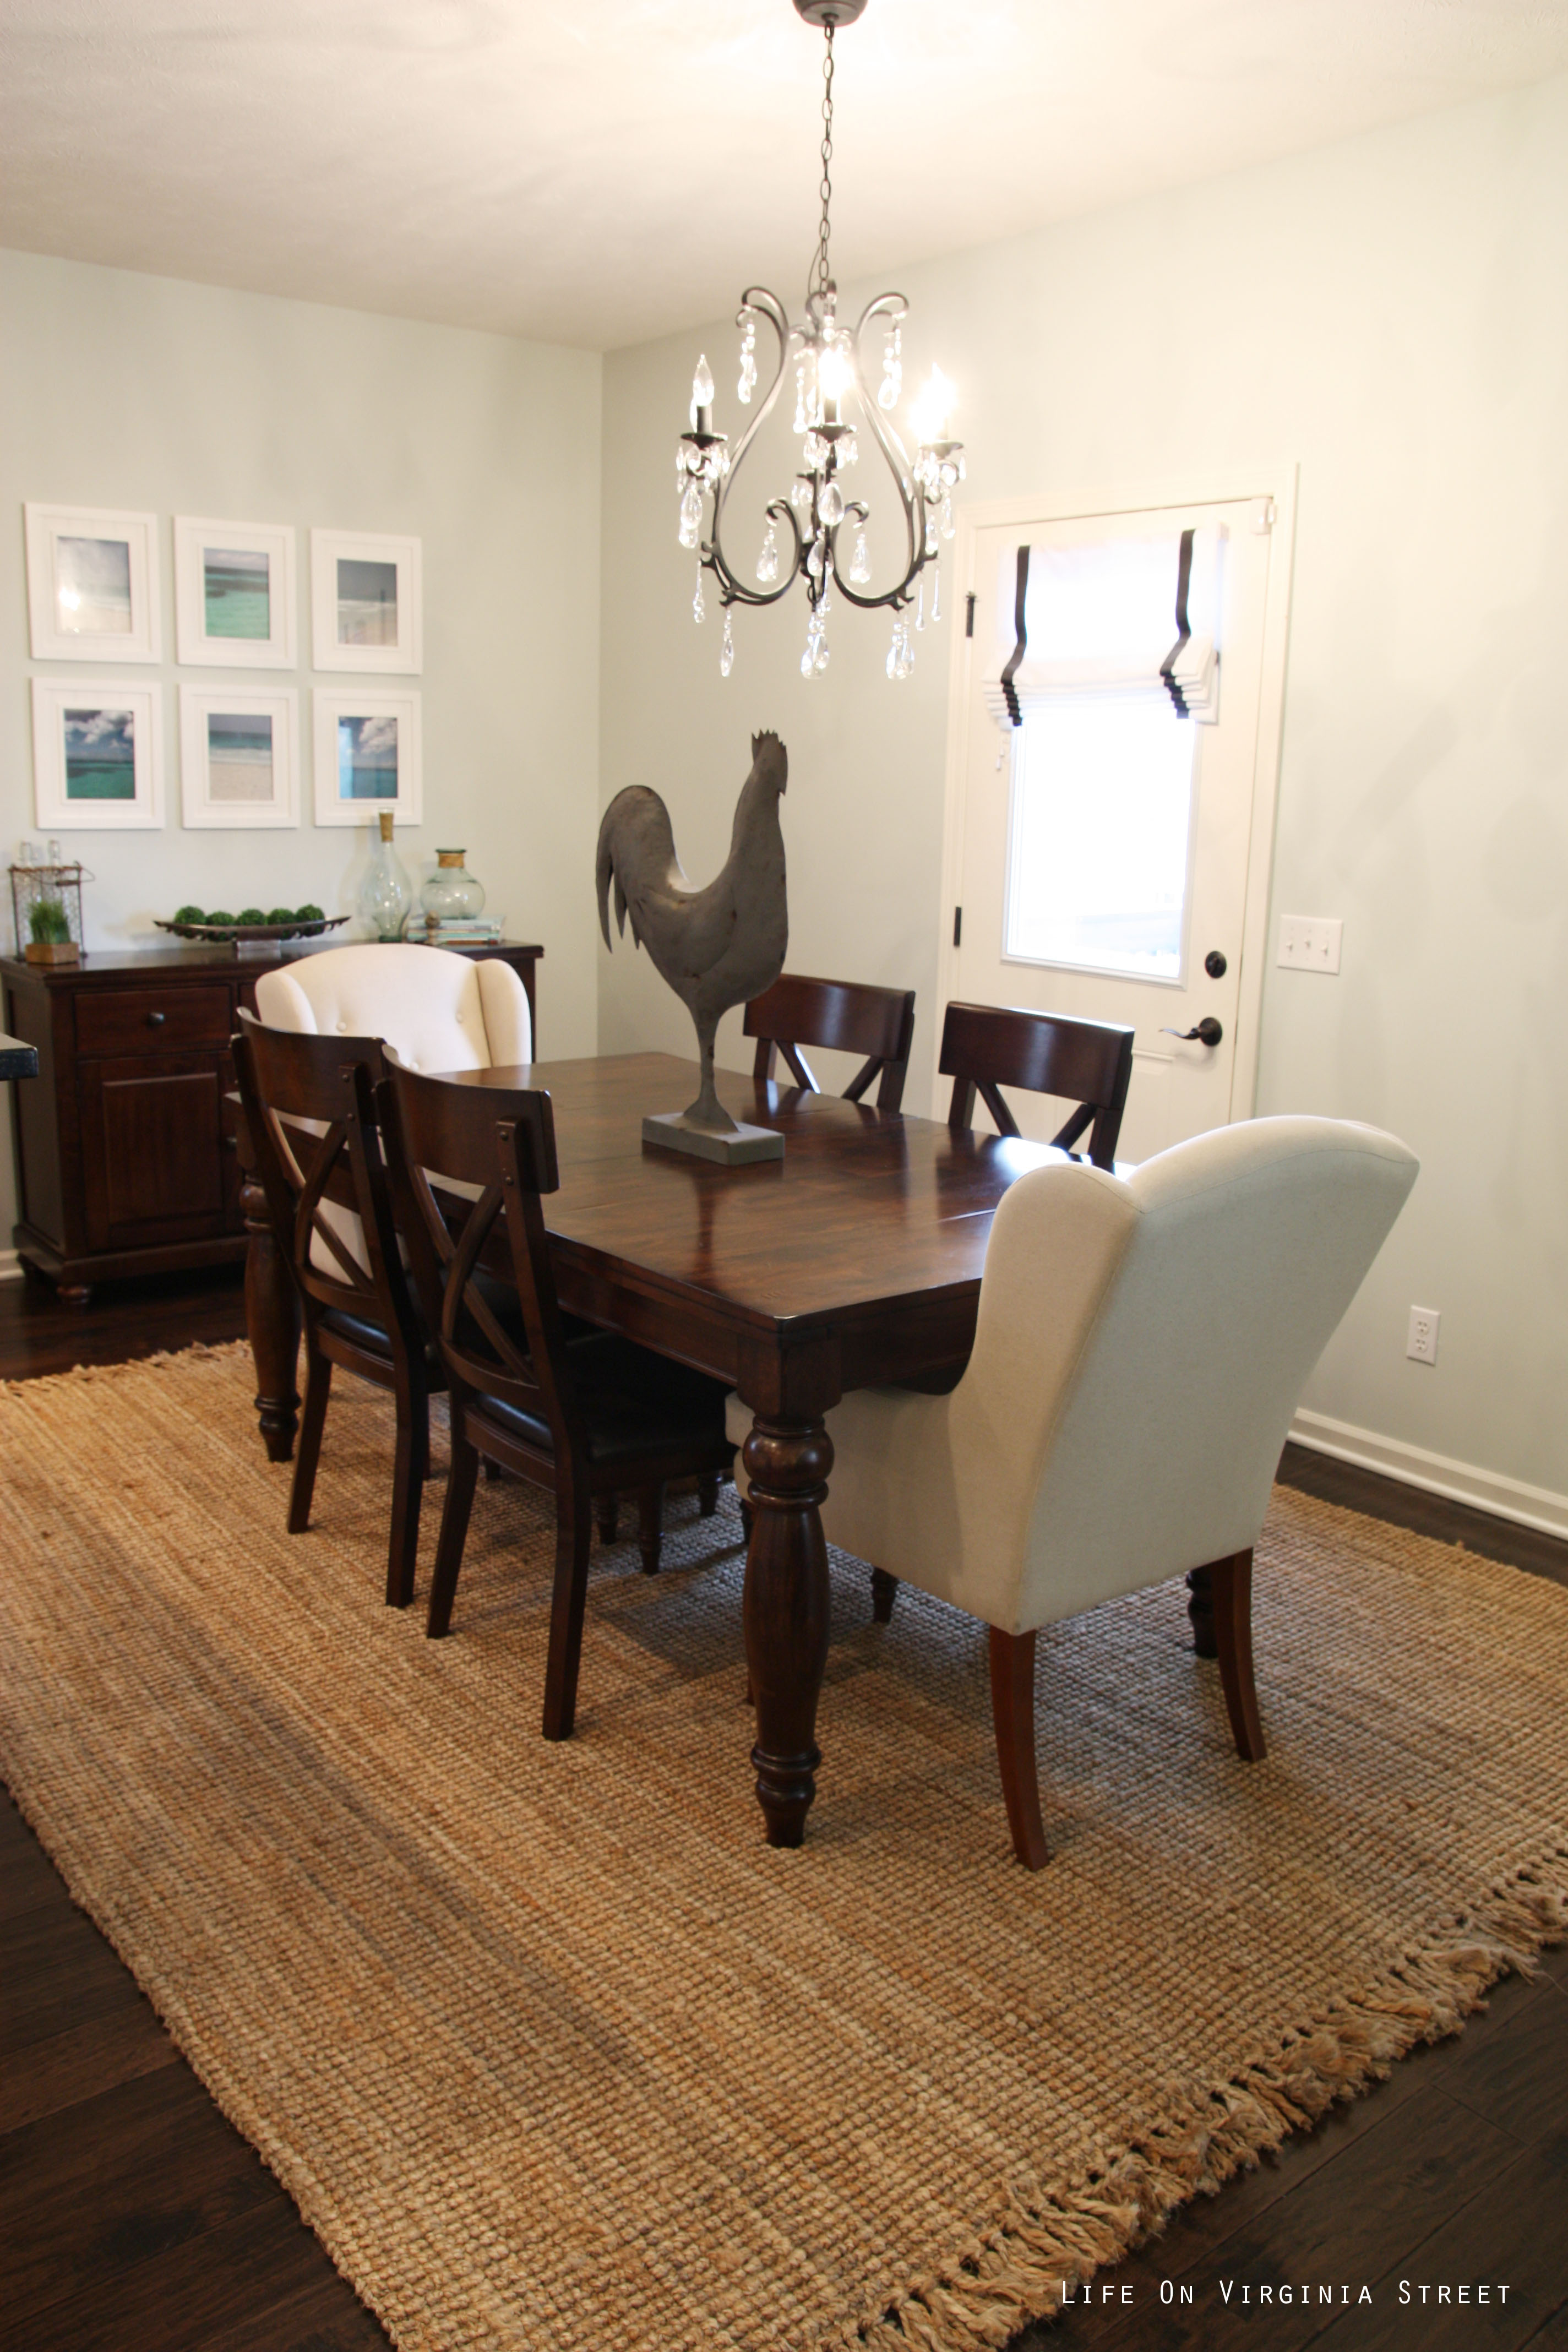 Dining Room Rugs For Sale - Large dining room rugs